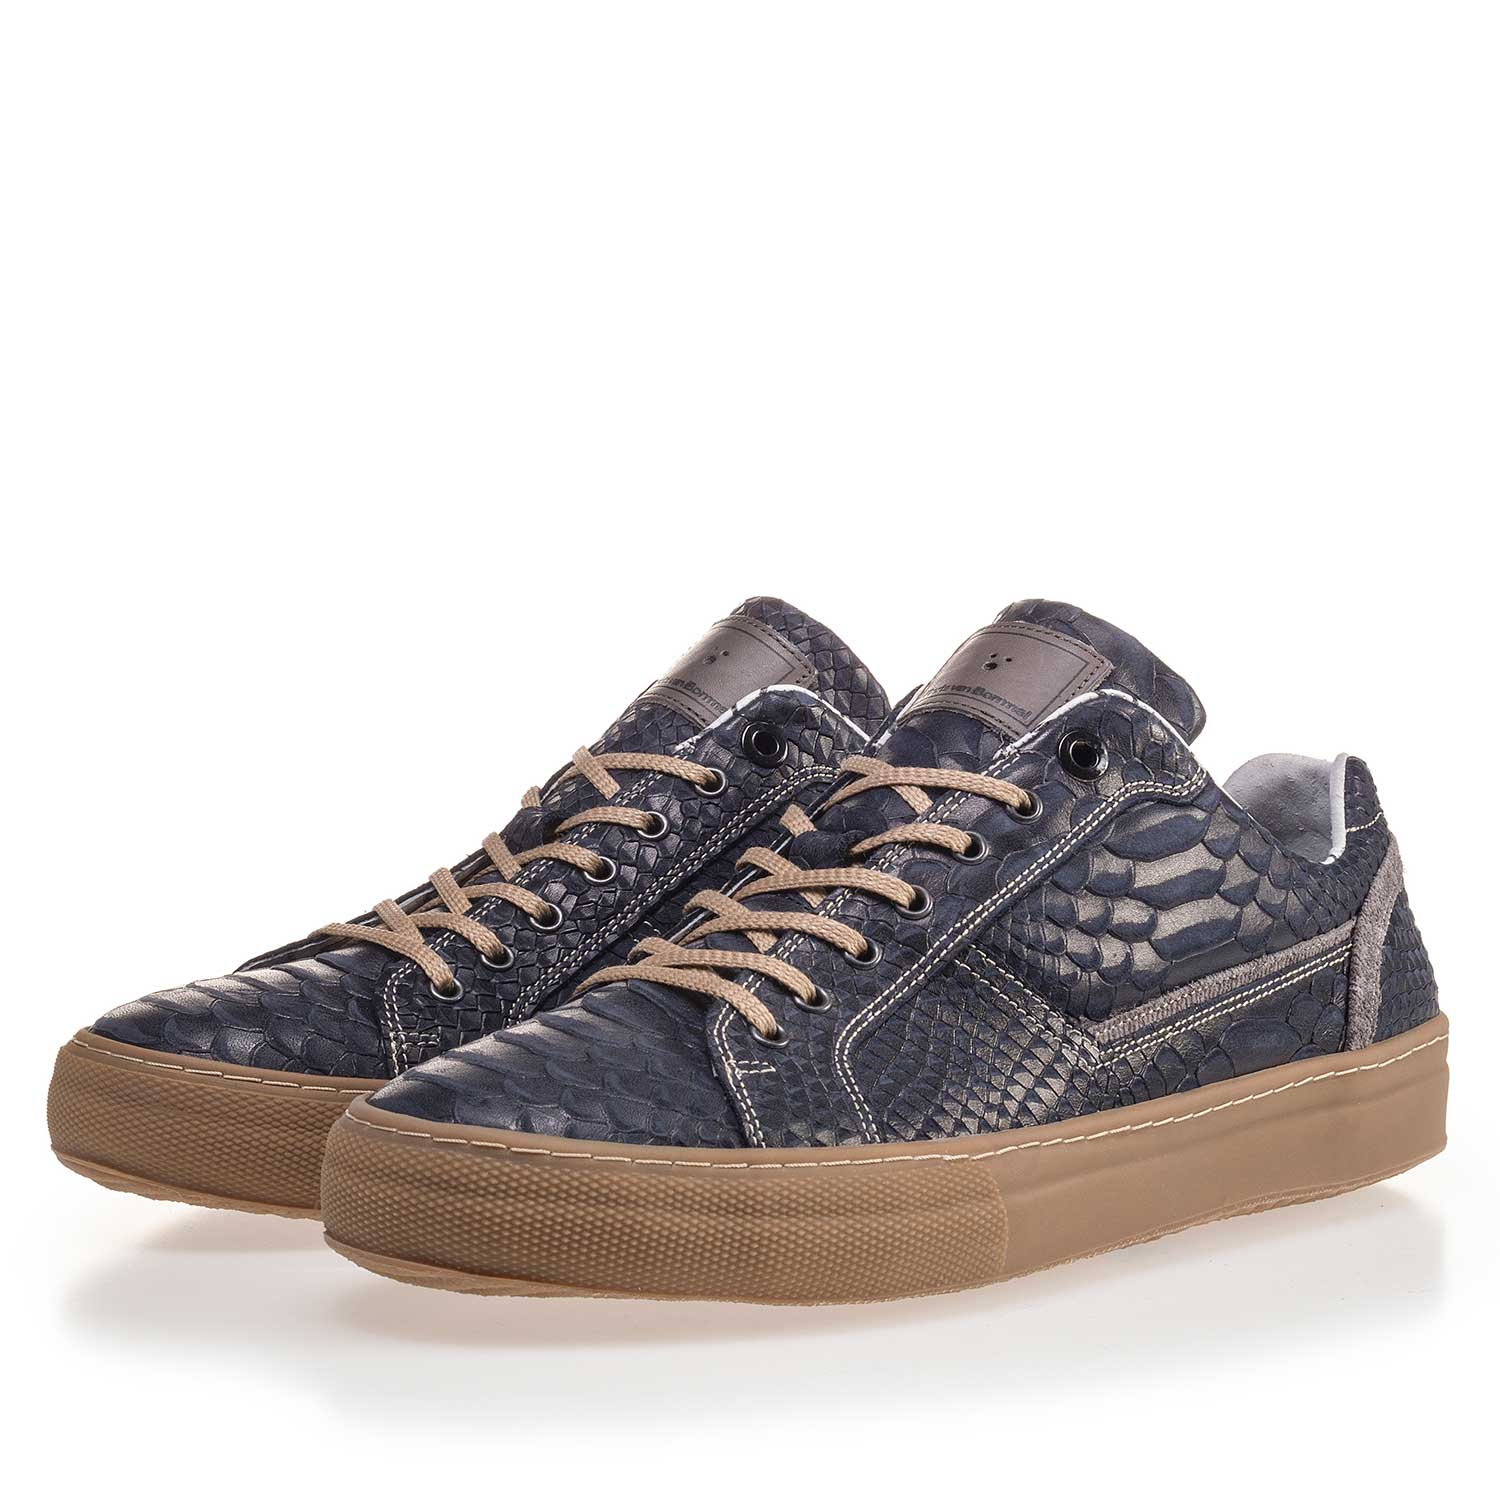 14448/14 - Dark blue leather sneaker finished with a snake print